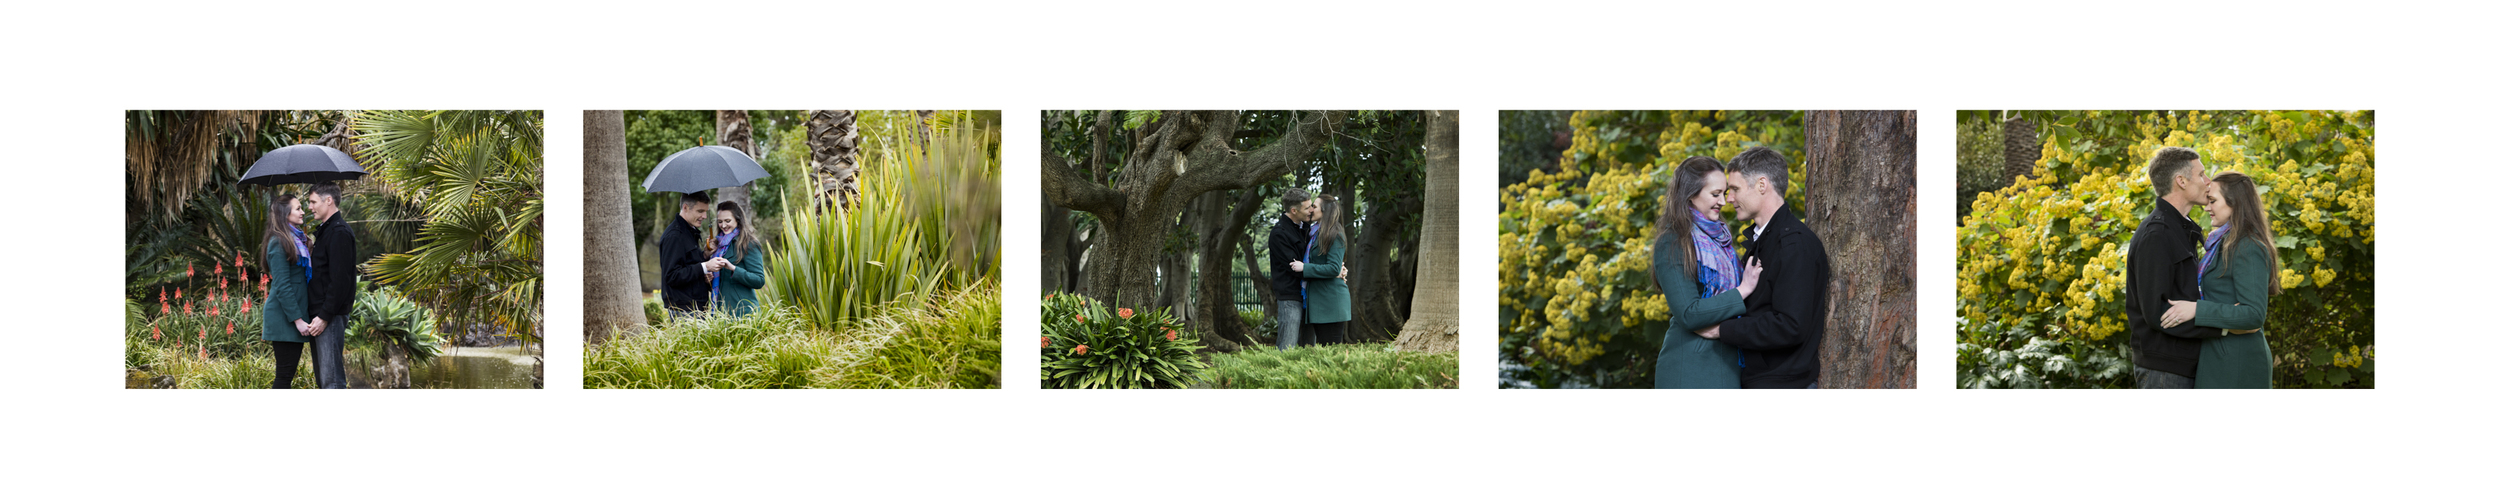 Bonnie and Clem, A very special place for their pre wedding shoot, Williamstown